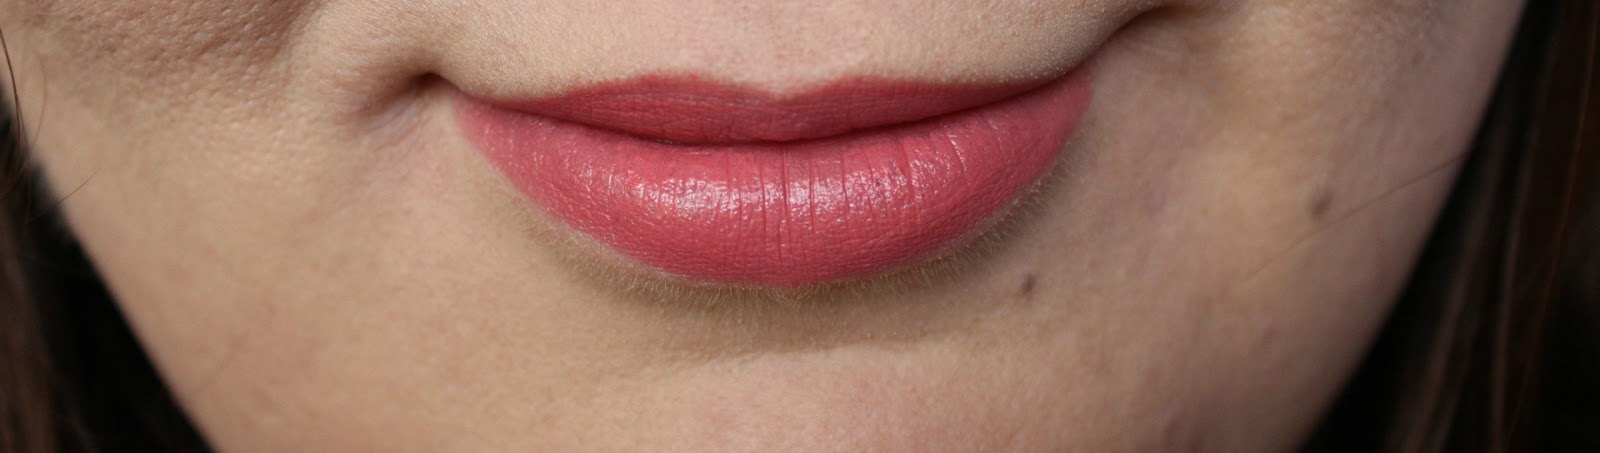 Revlon Ultra HD Lipstick In Rose